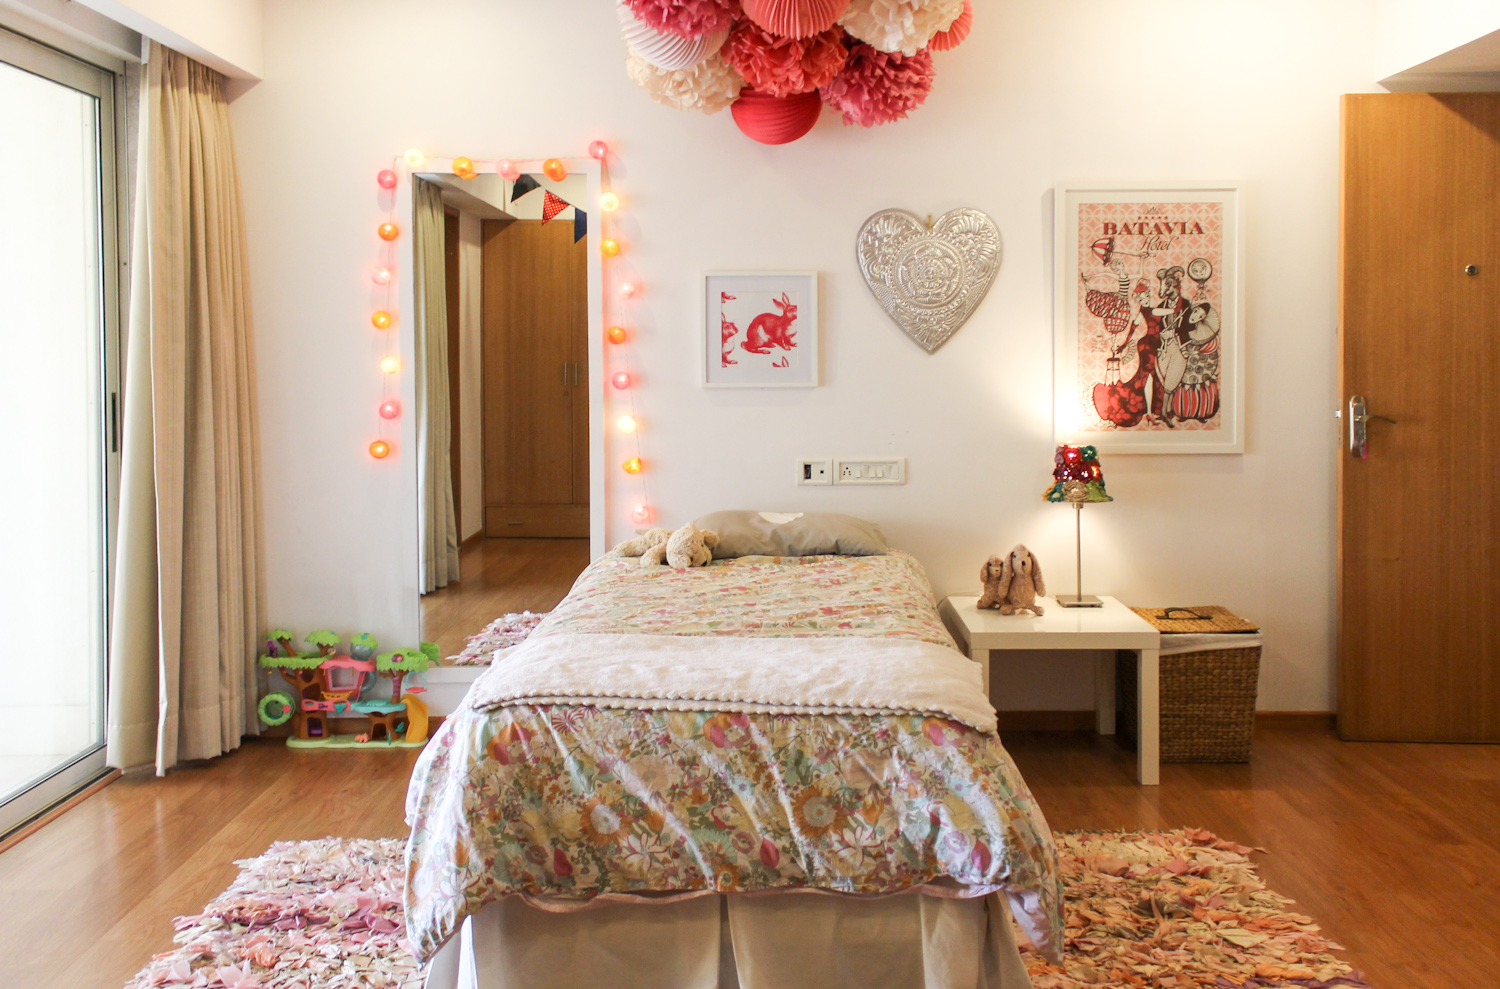 Kids Room with Pom-poms 3